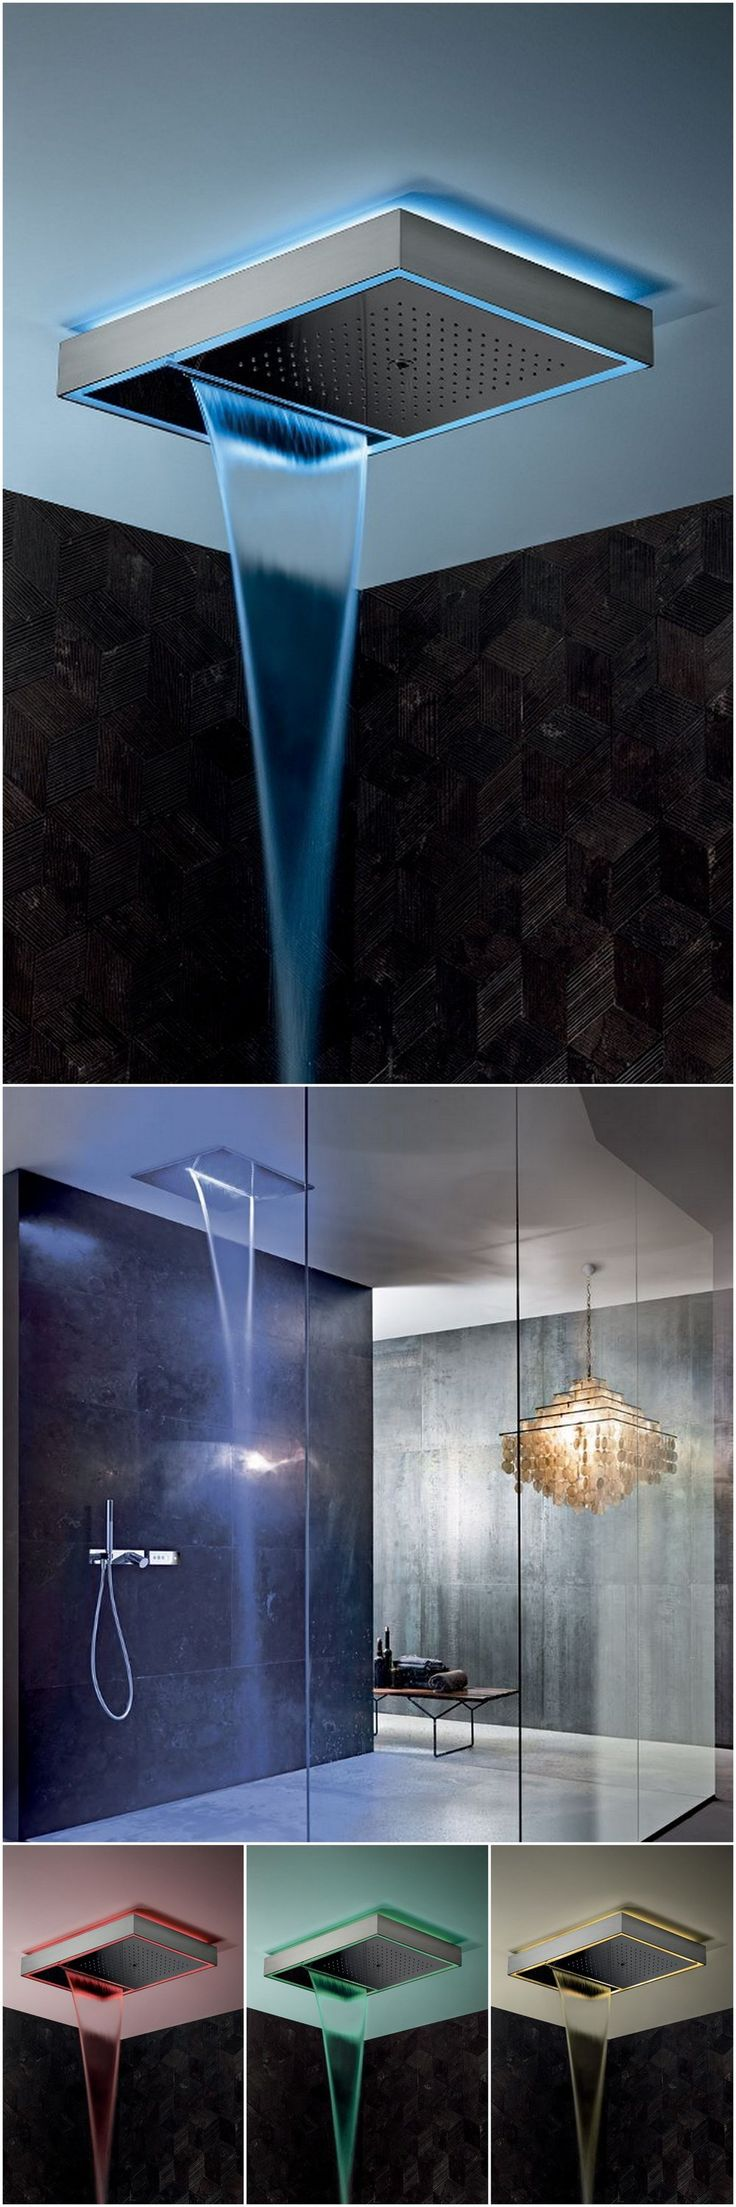 The Acquadolce Multi-Functional Shower